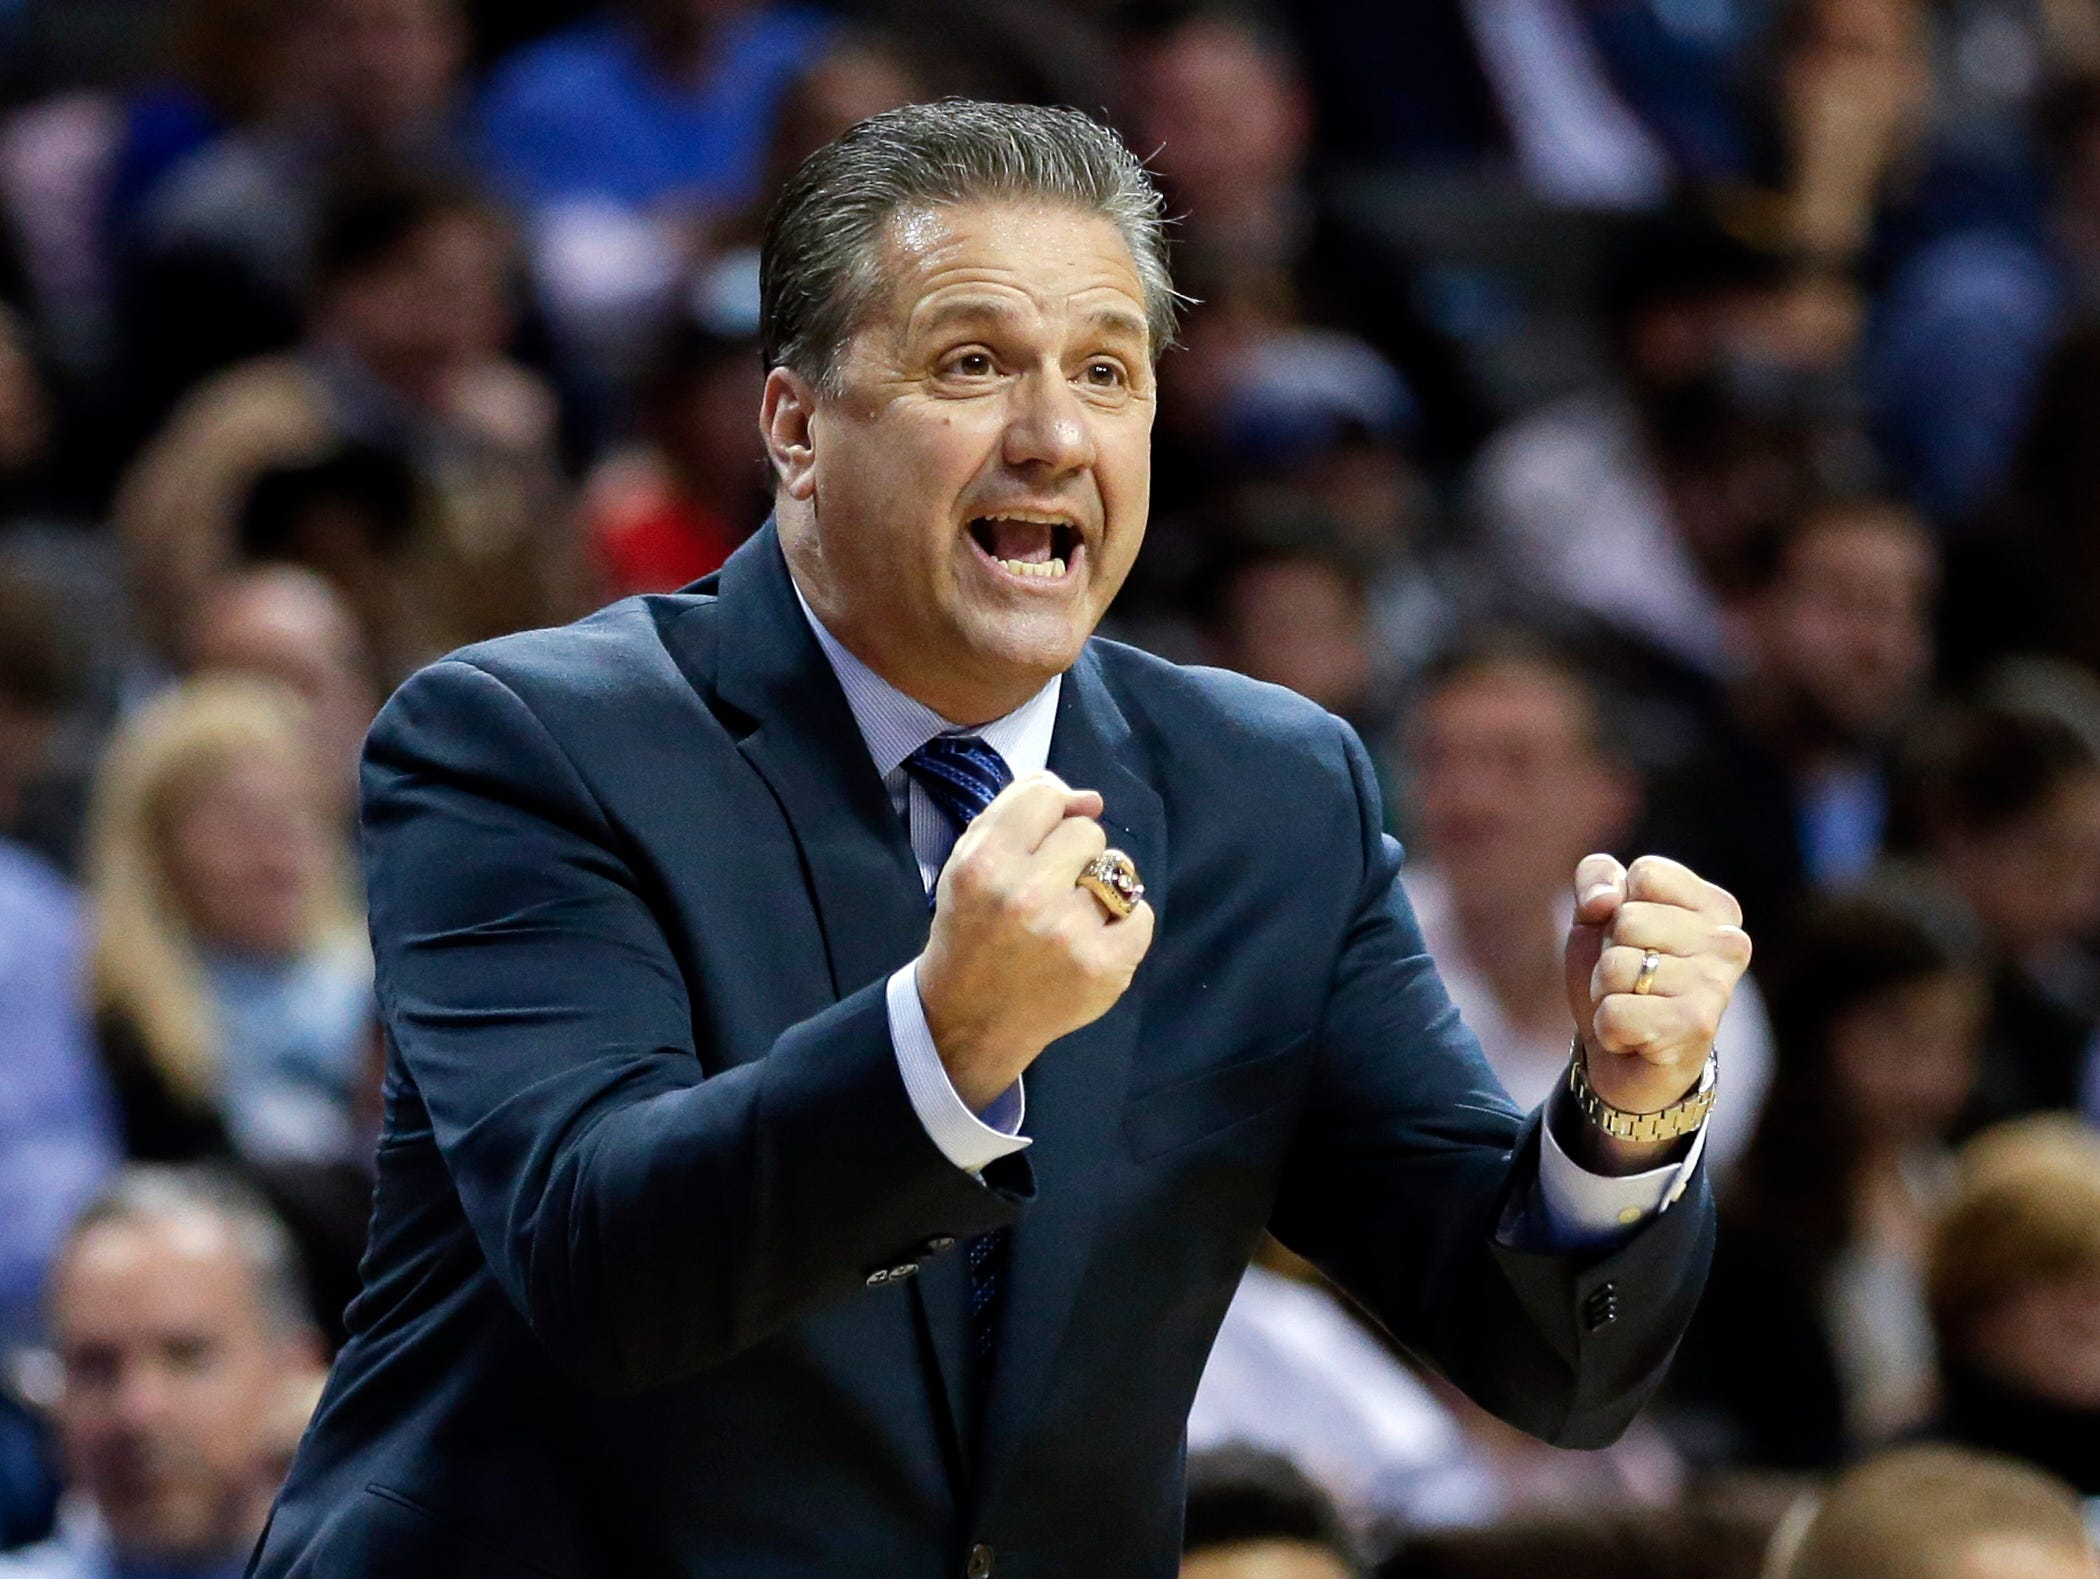 Kentucky head coach John Calipari calls out to his team during the first half of an NCAA college basketball game against Ohio State Saturday, Dec. 19, 2015, in New York. (AP Photo/Frank Franklin II)